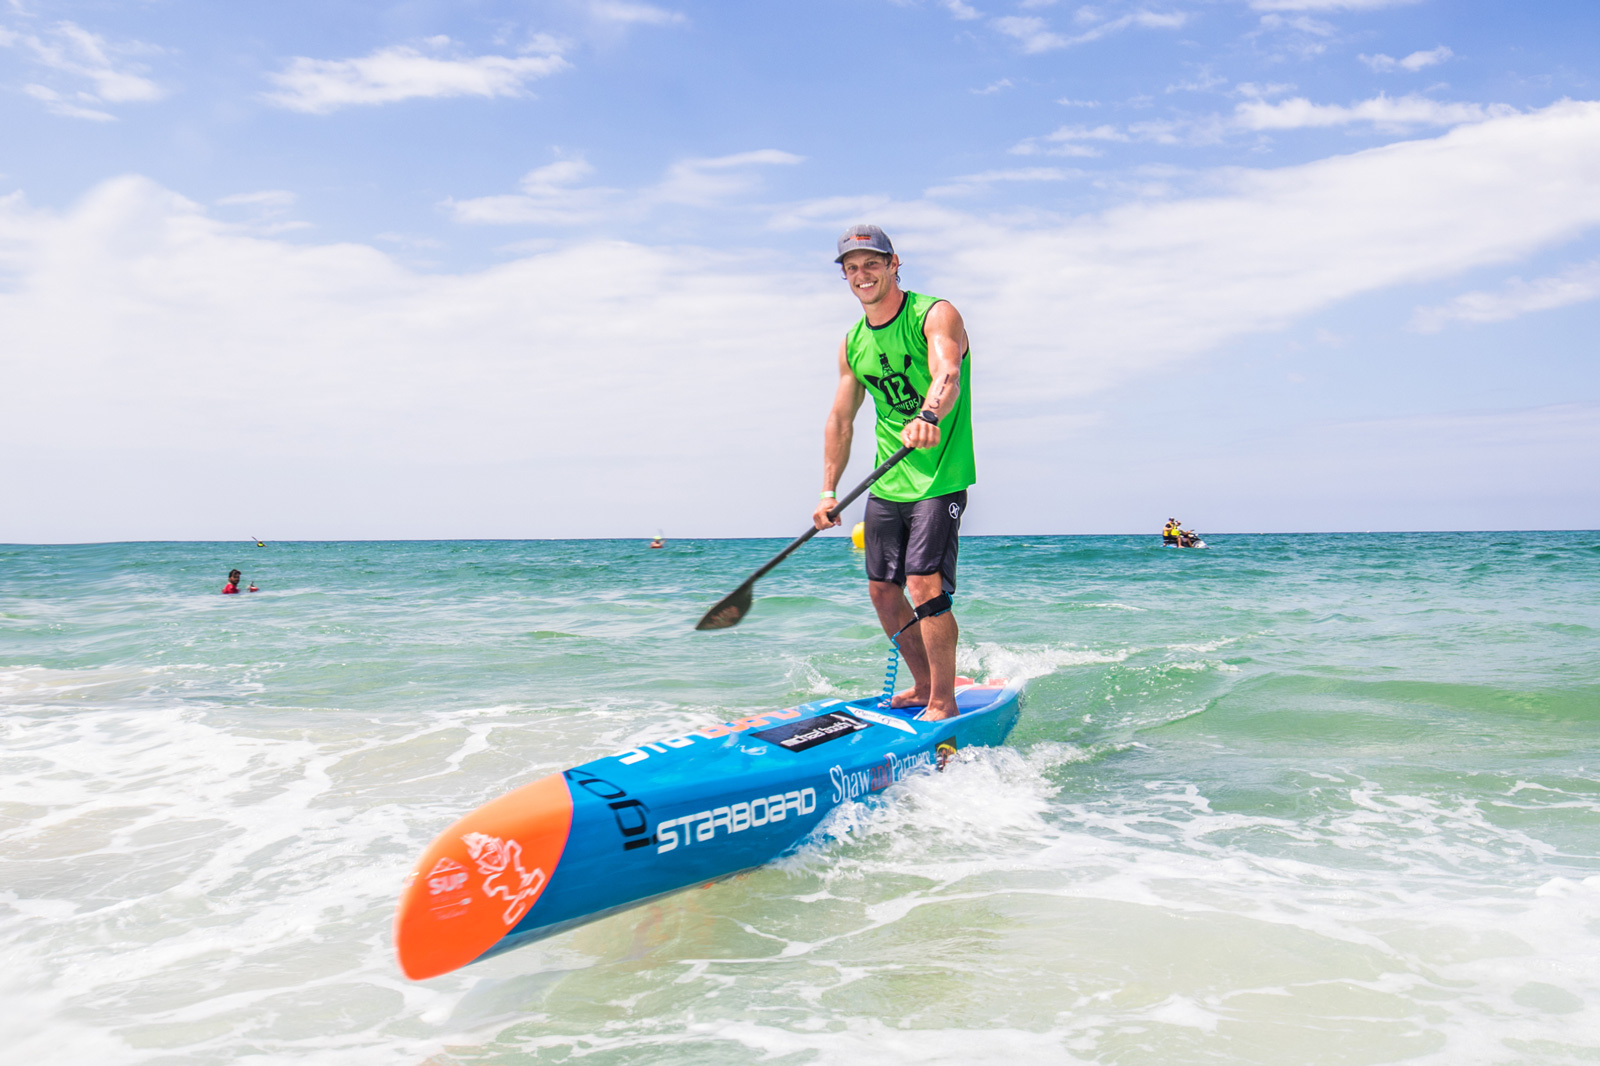 Starboard-12-Towers-2018-SUP-race-michael-booth-australia